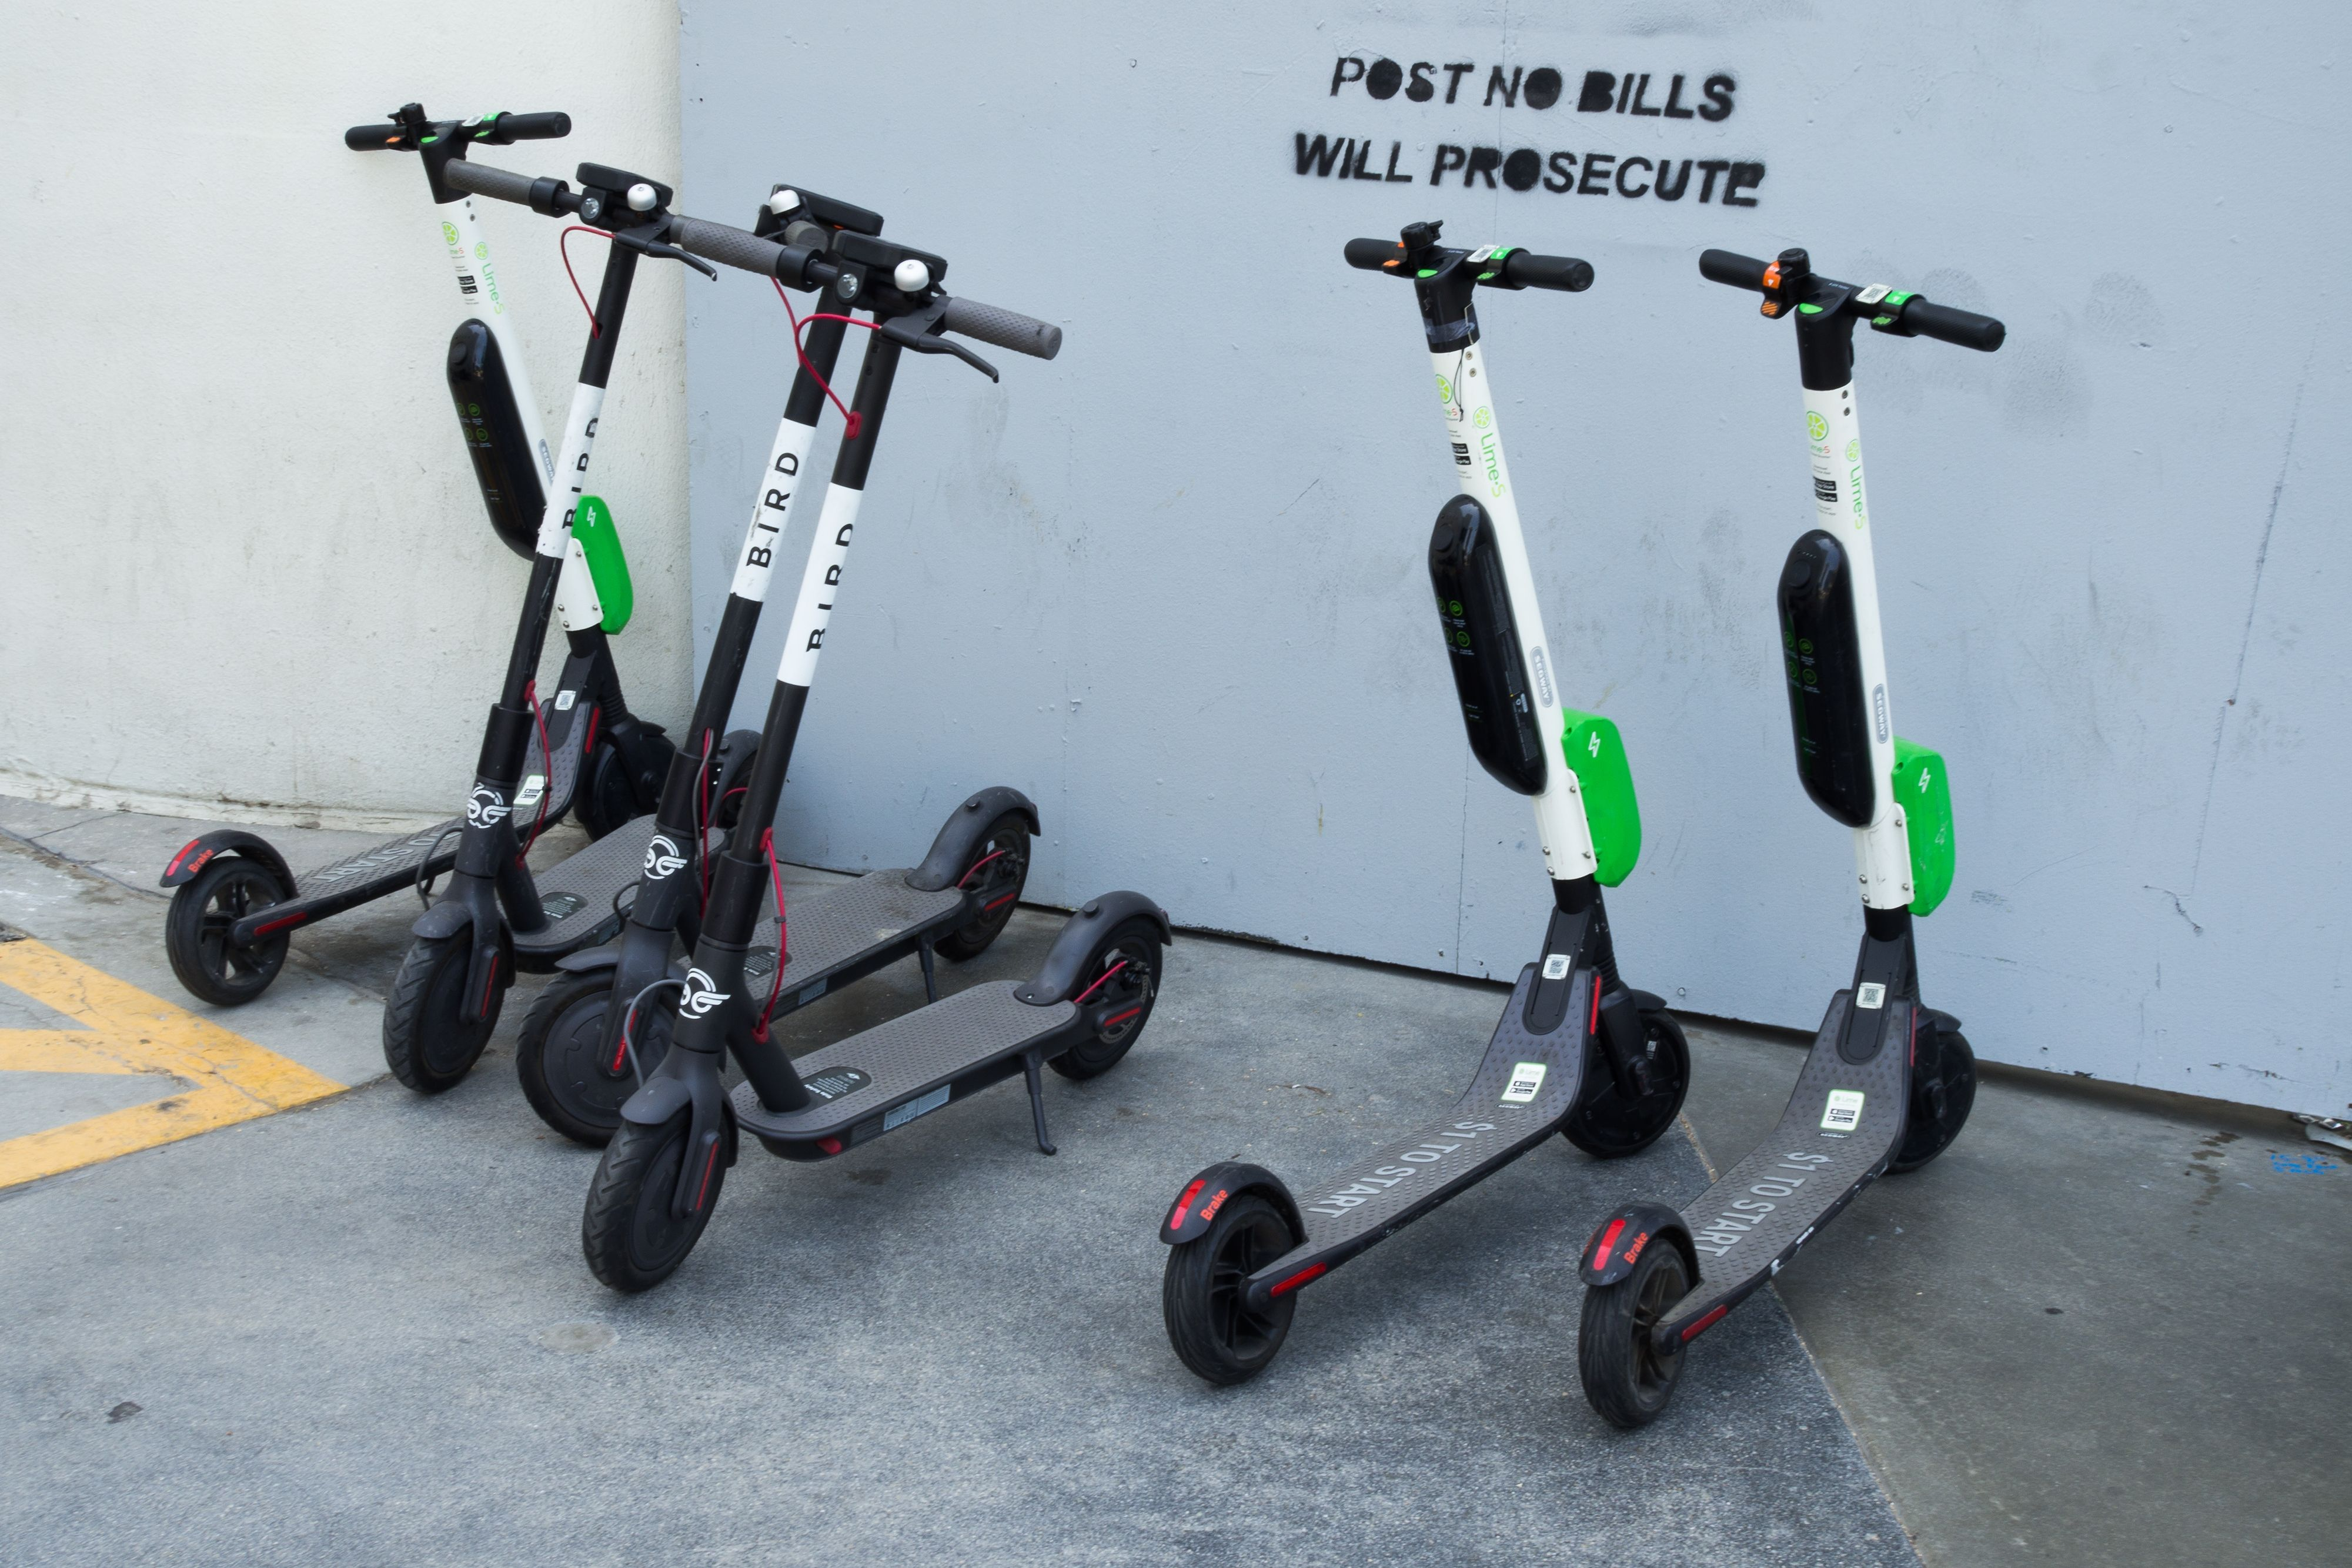 Shared electric scooters are seen in Santa Monica, California.